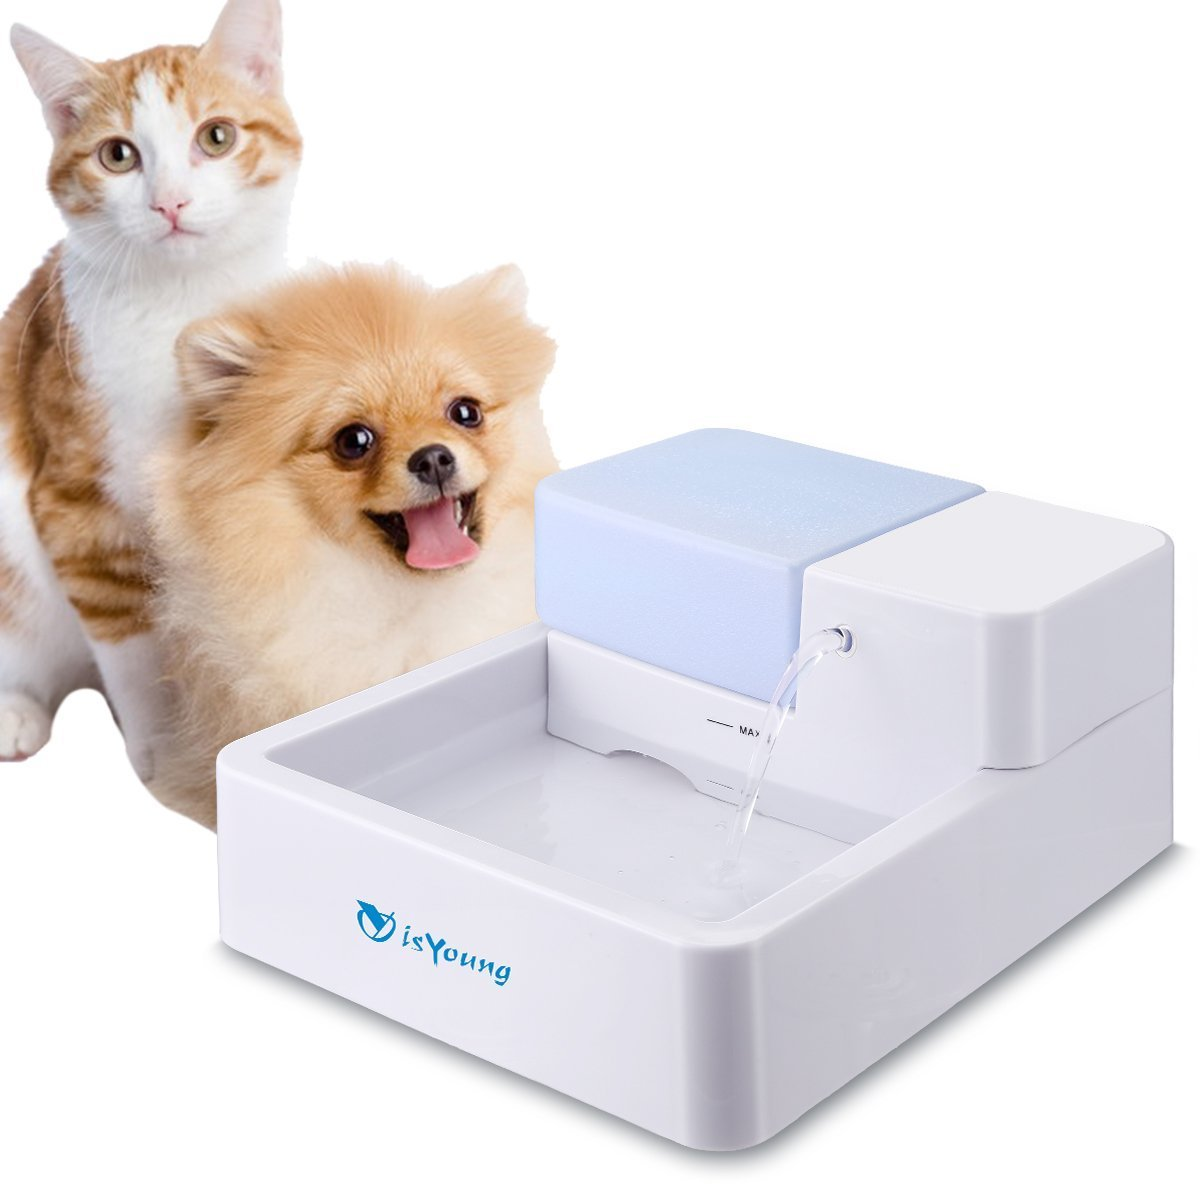 isYoung 24 * 7 Ultra Quiet Drinking Pet Fountain for Cats and Dogs 1.8L Water Capacity with Activated Carbon Filter and LED Lighting